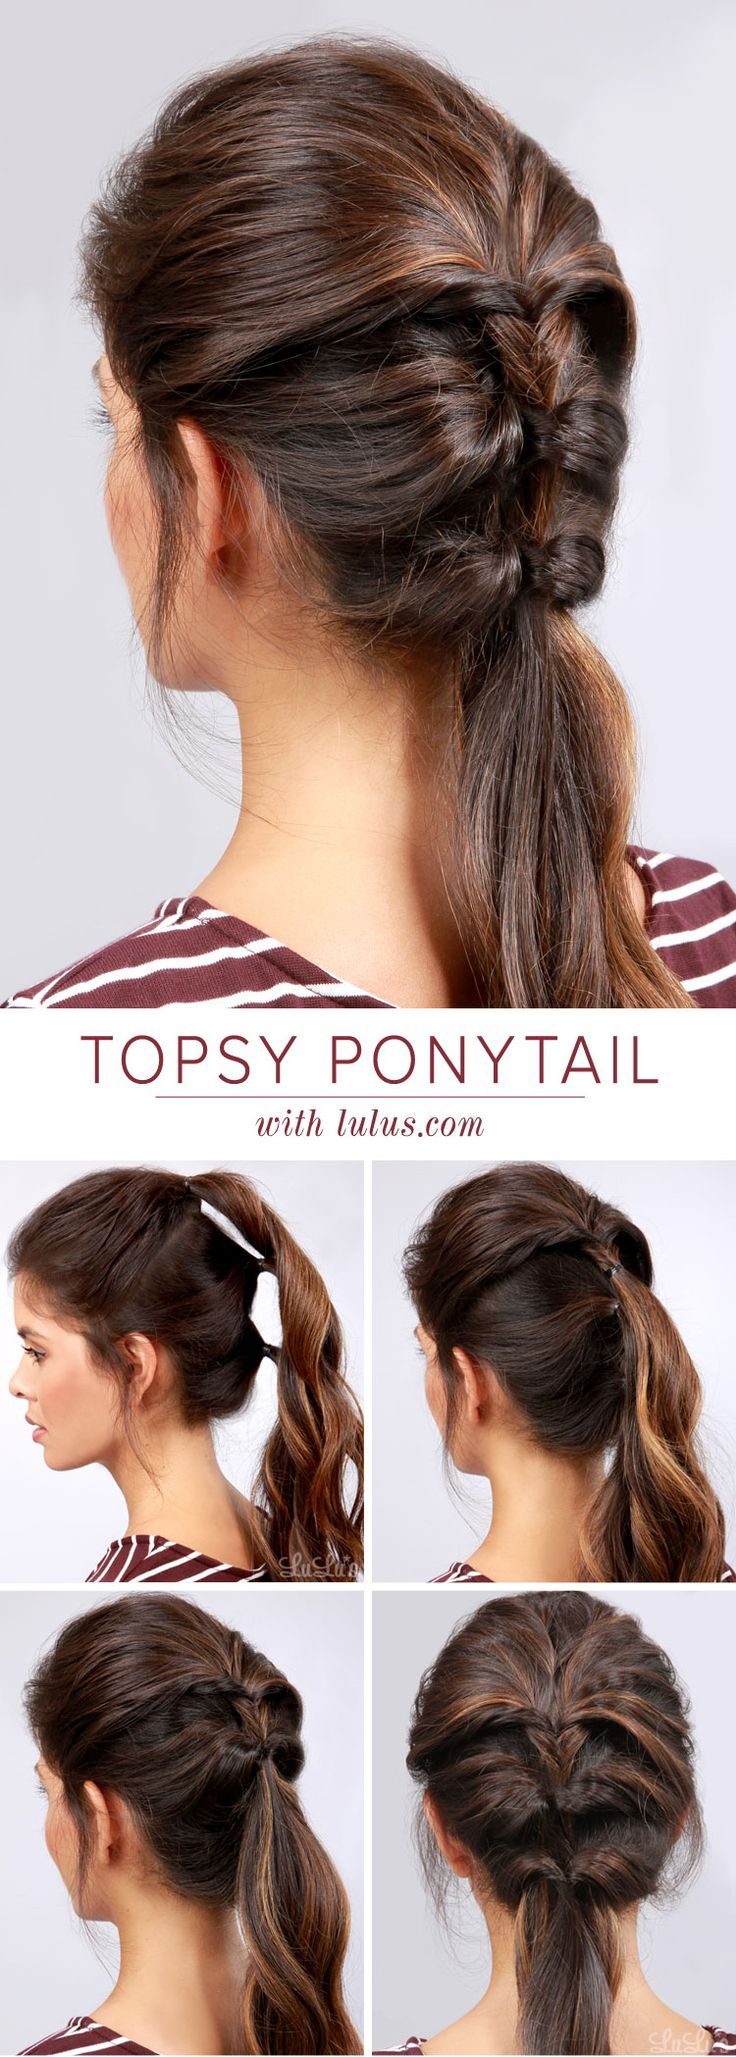 LuLu*s How-To: Topsy Ponytail Hair Tutorial - Lulus.com Fashion Blog